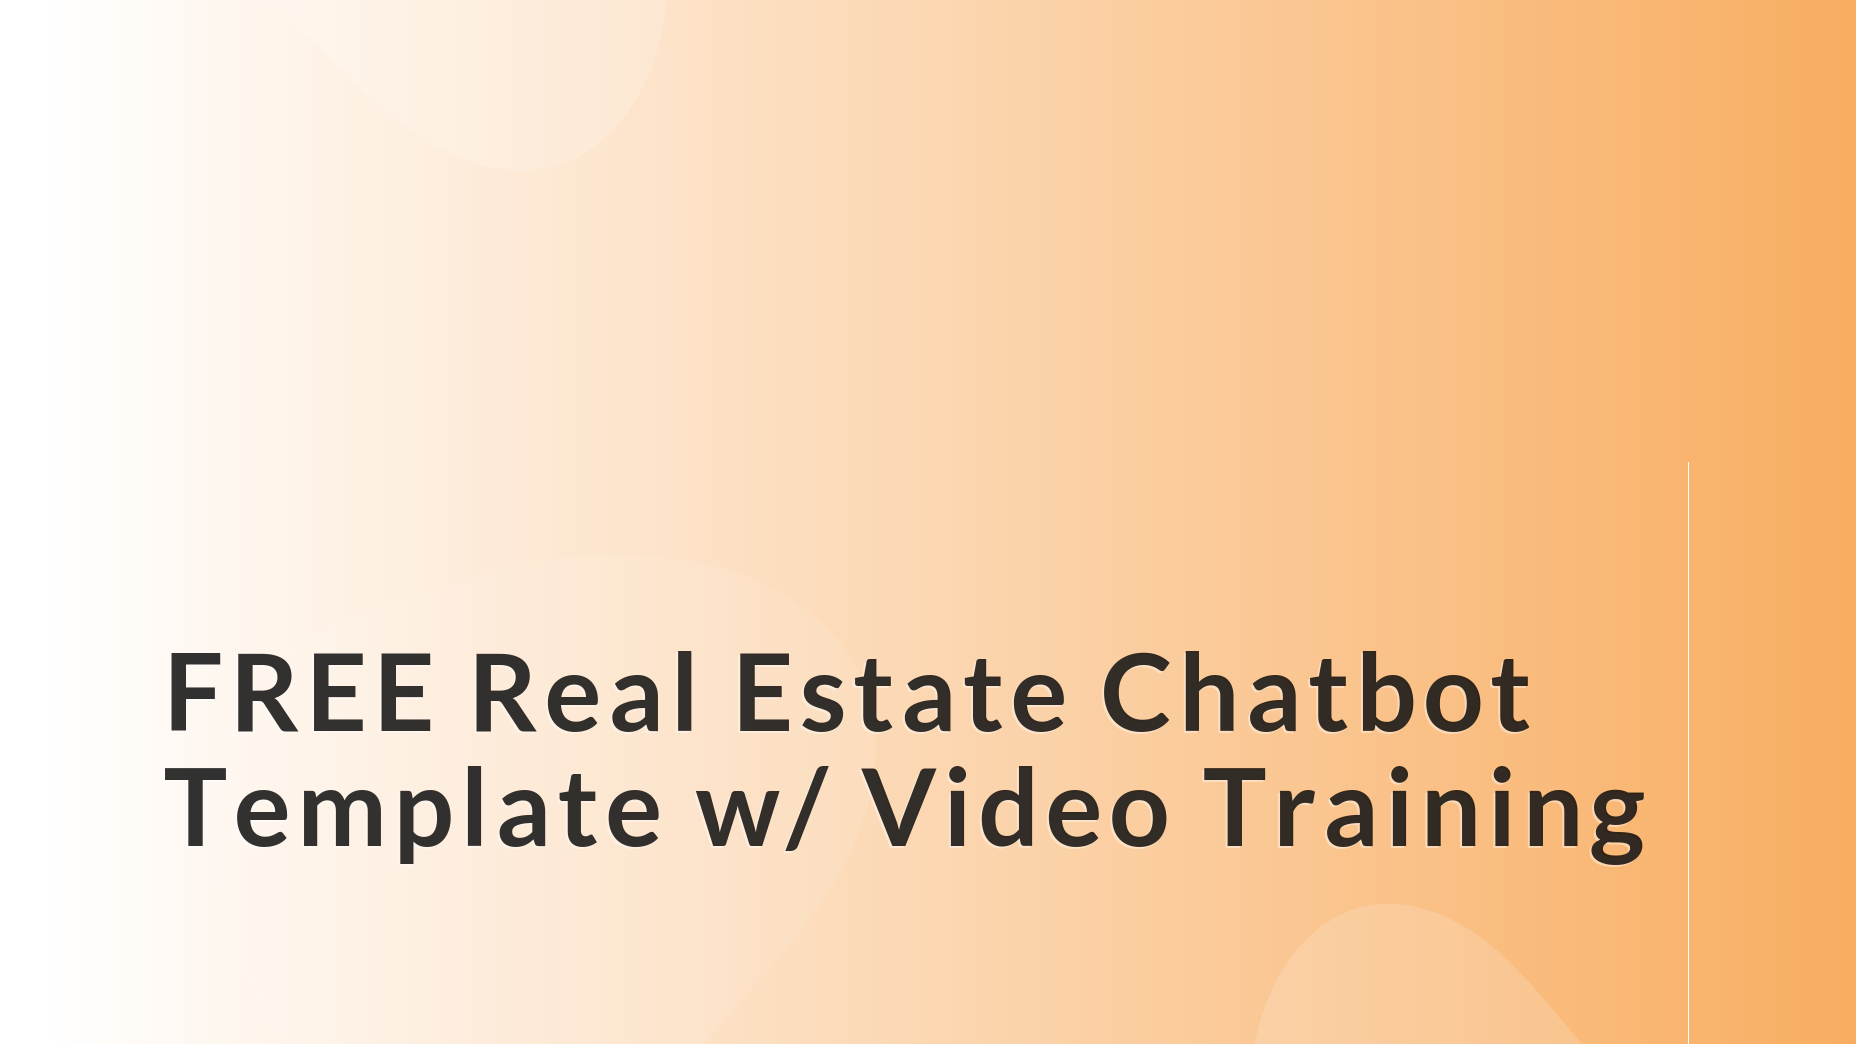 FREE Home Evaluation Real Estate Chatbot Template with Video